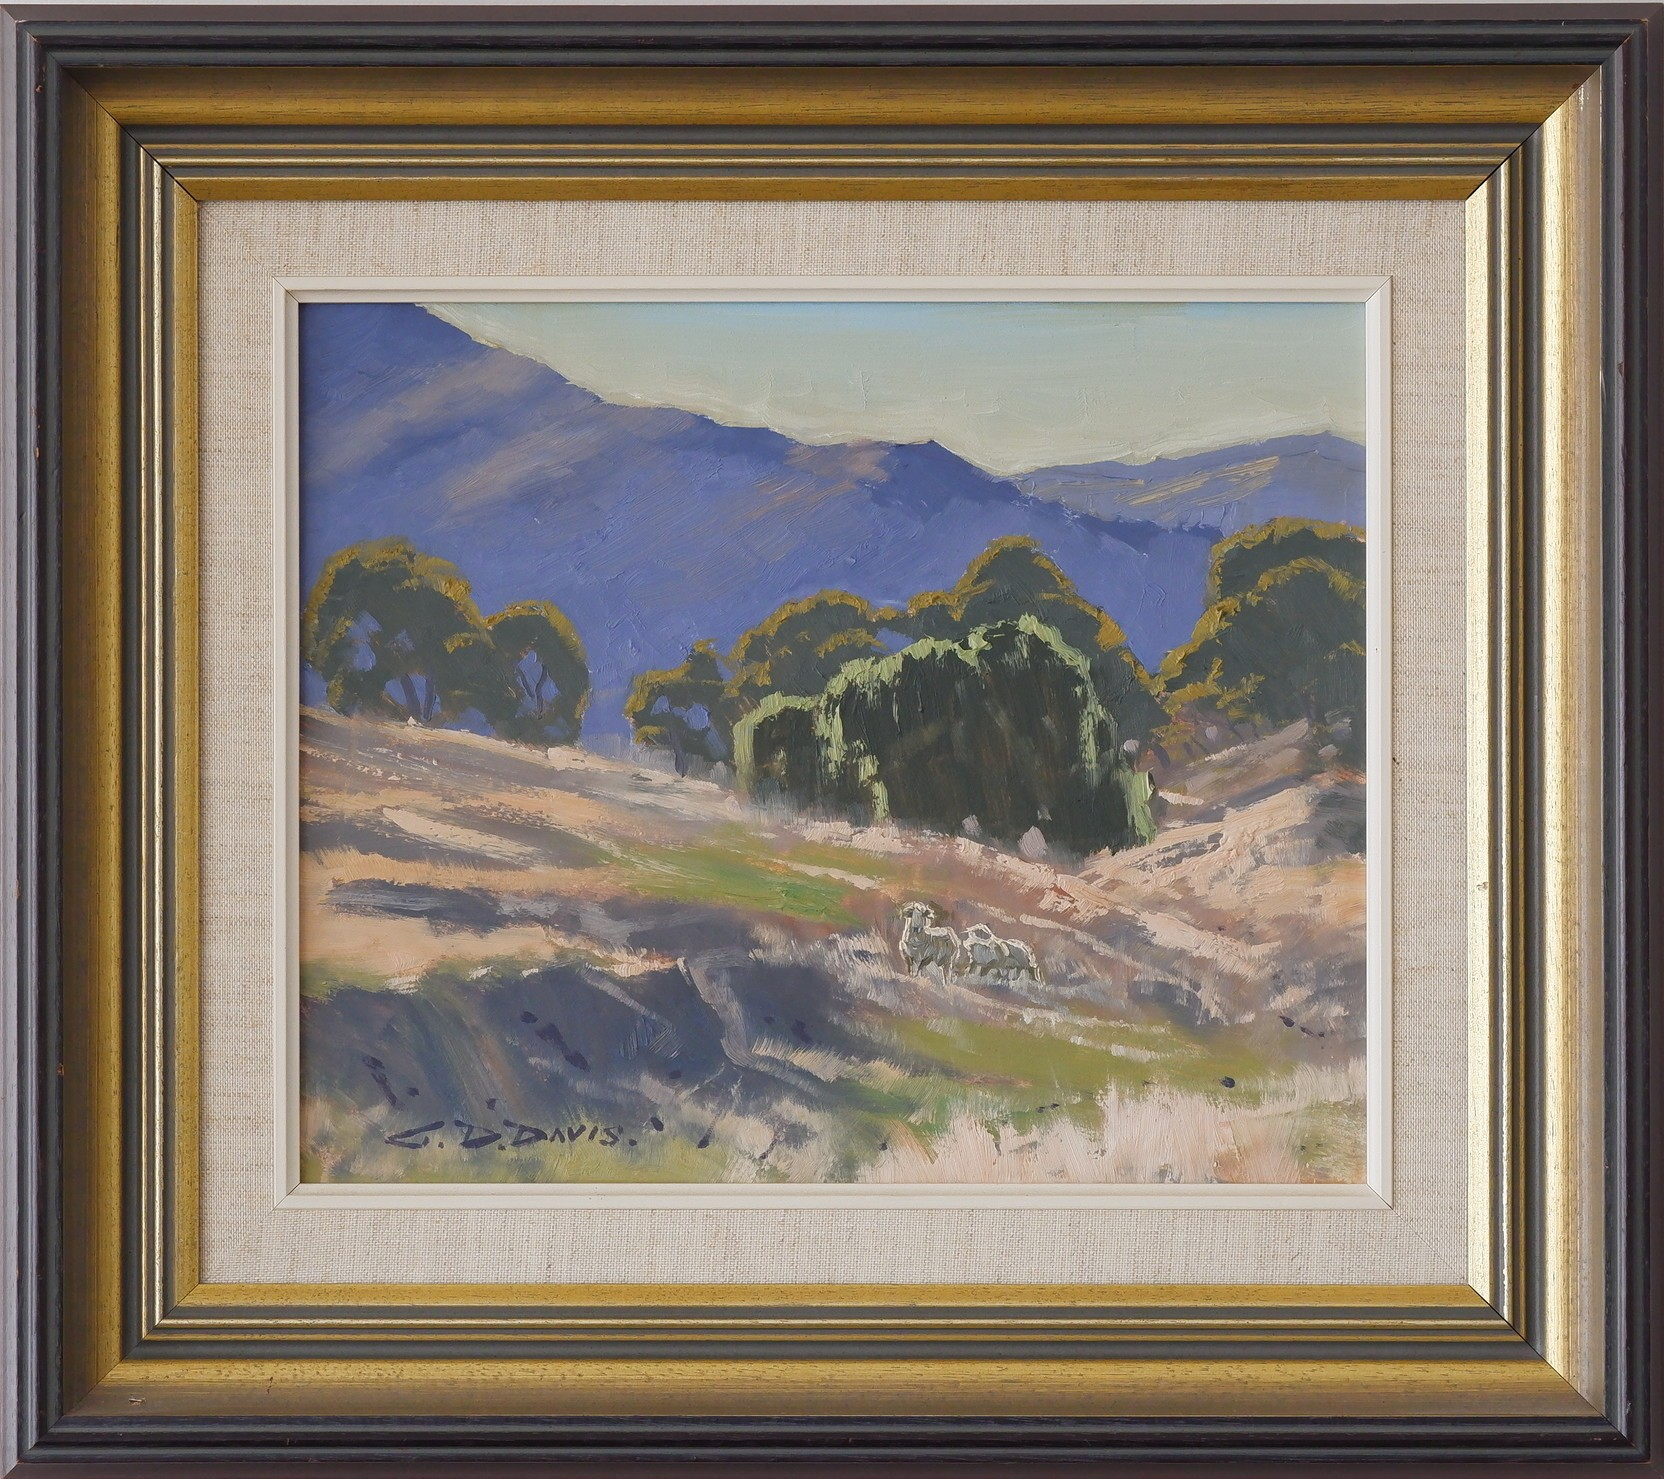 'Geoffrey Davis (1926-) Monaro Pastoral Scene Oil on Board'